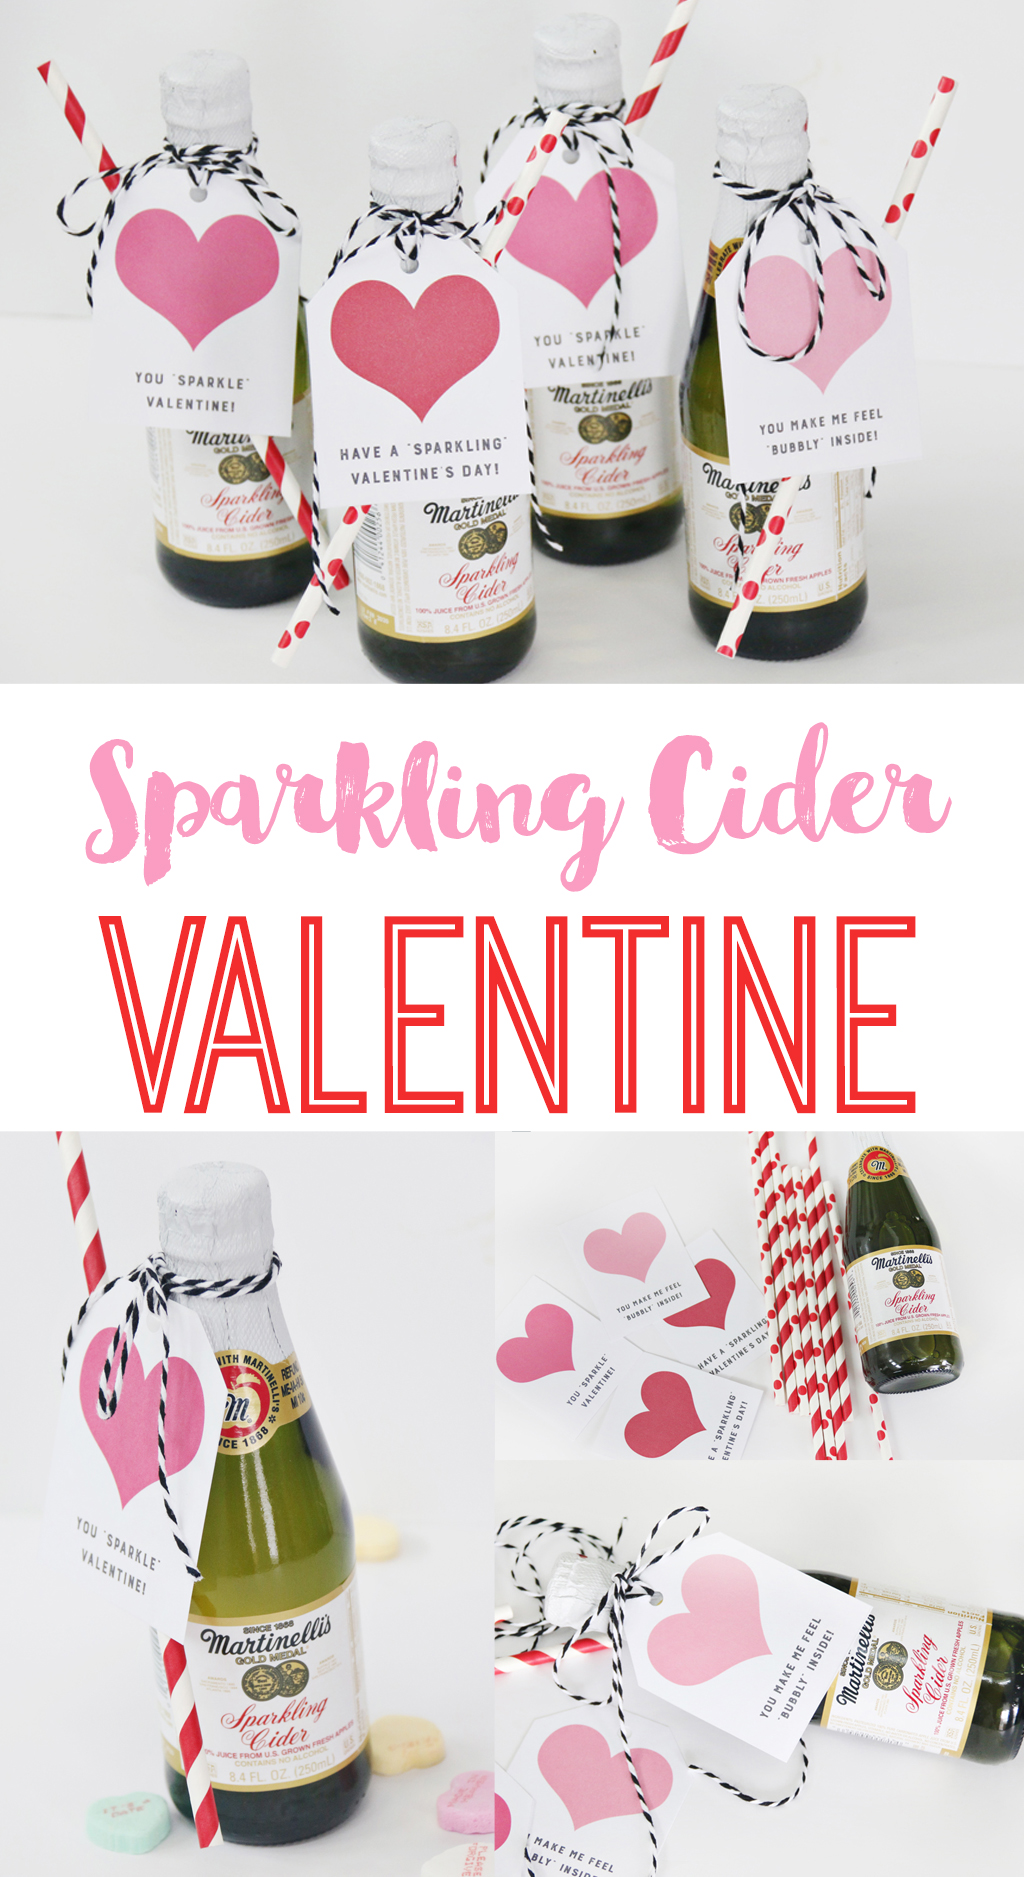 Martinelli\'s Sparkling Cider Valentine\'s Day Party - The Crafting Chicks